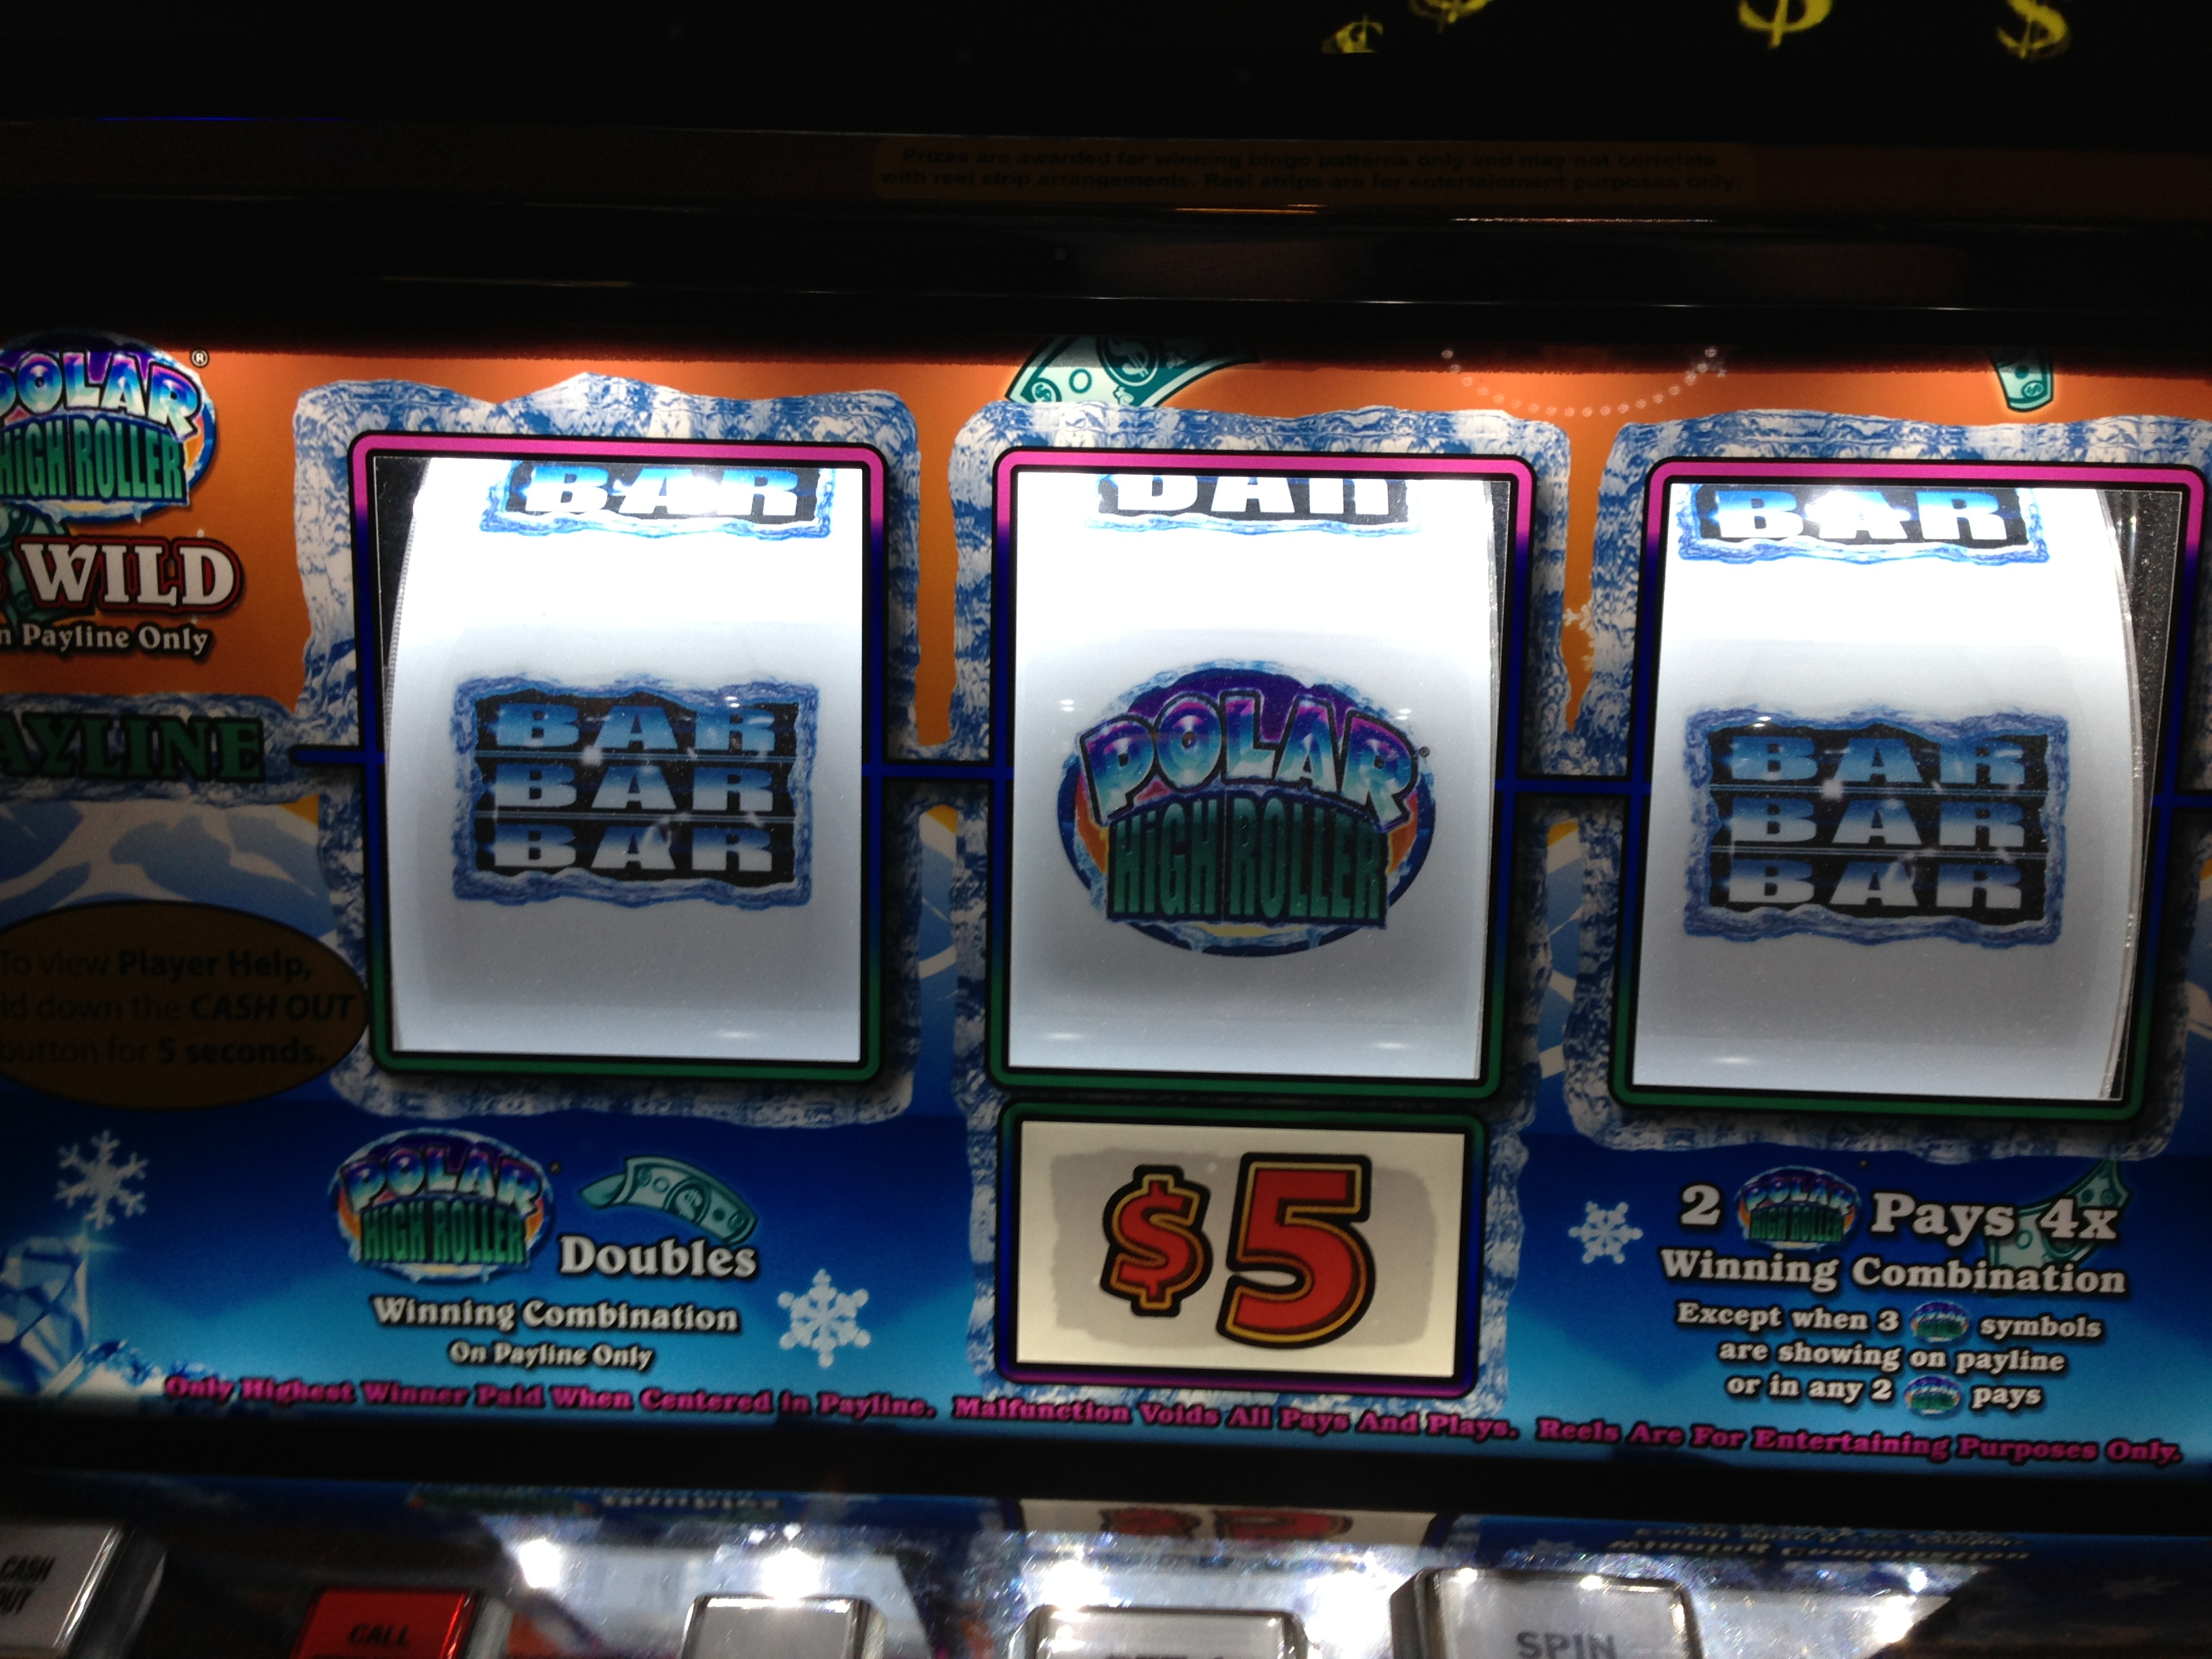 Winstar slots machine chip poker zynga gratis